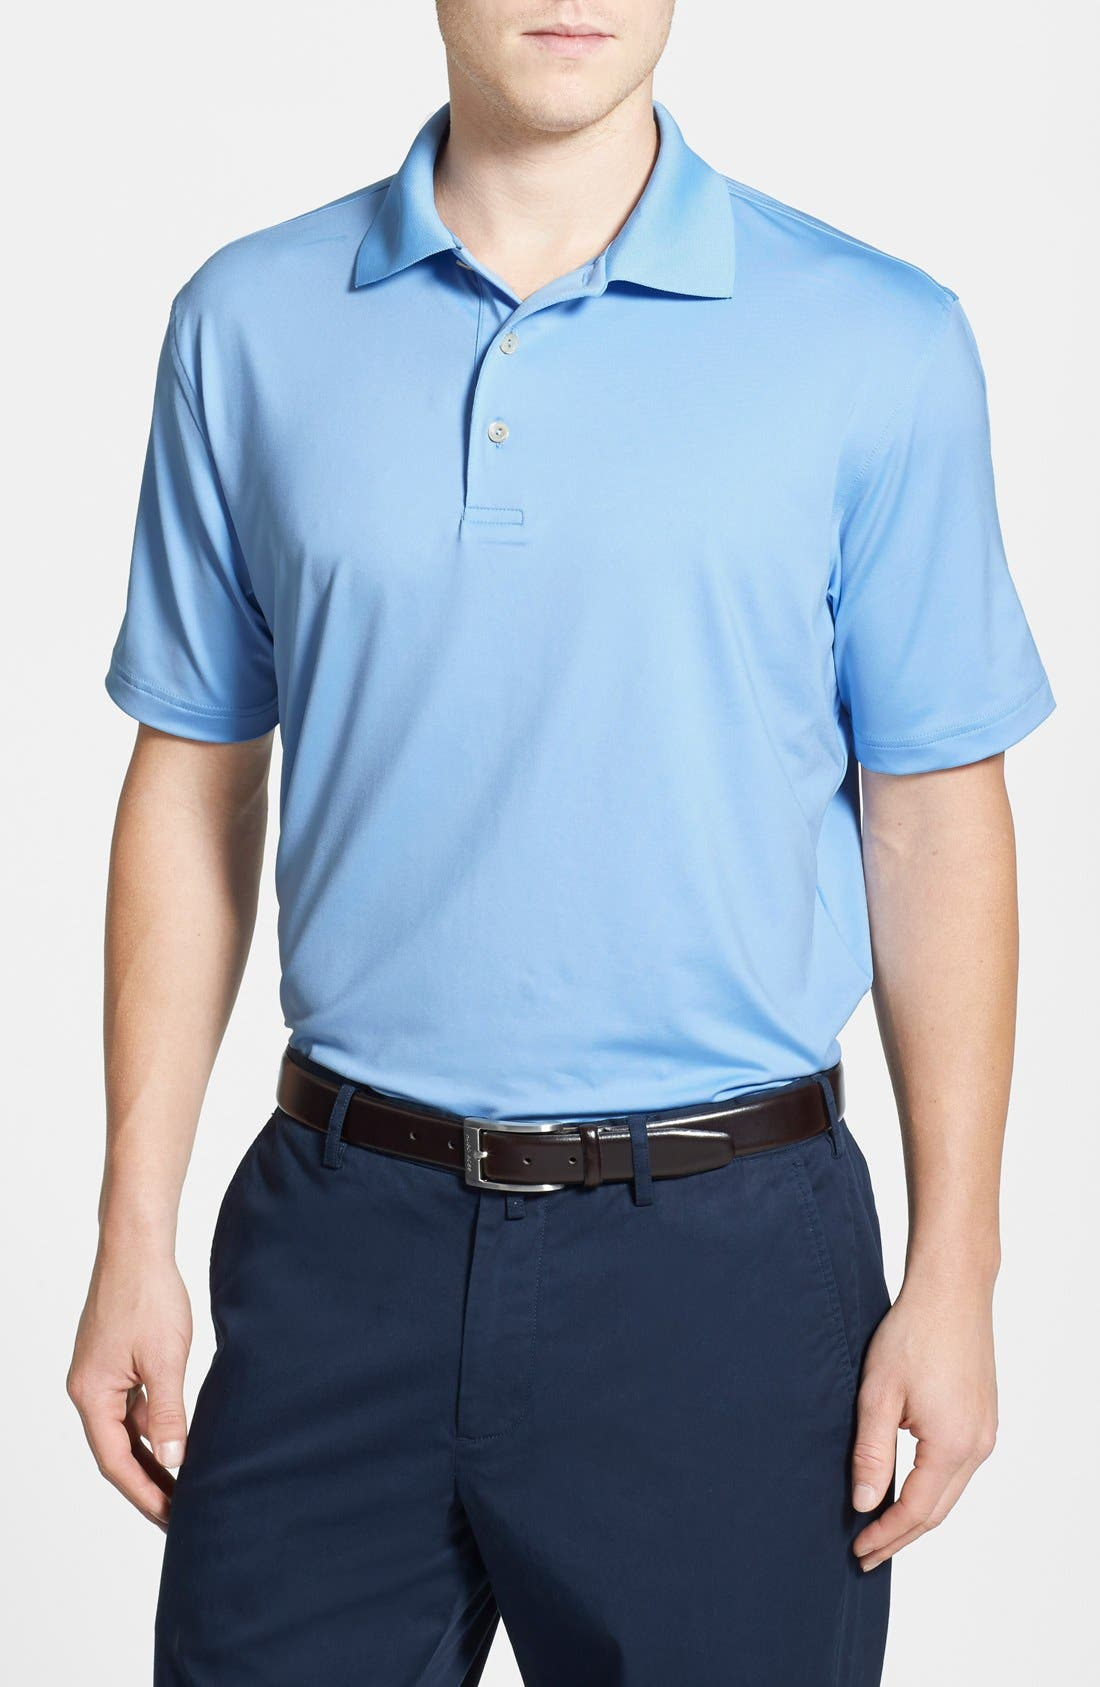 PETER MILLAR Moisture Wicking Stretch Jersey Polo, Main, color, 400